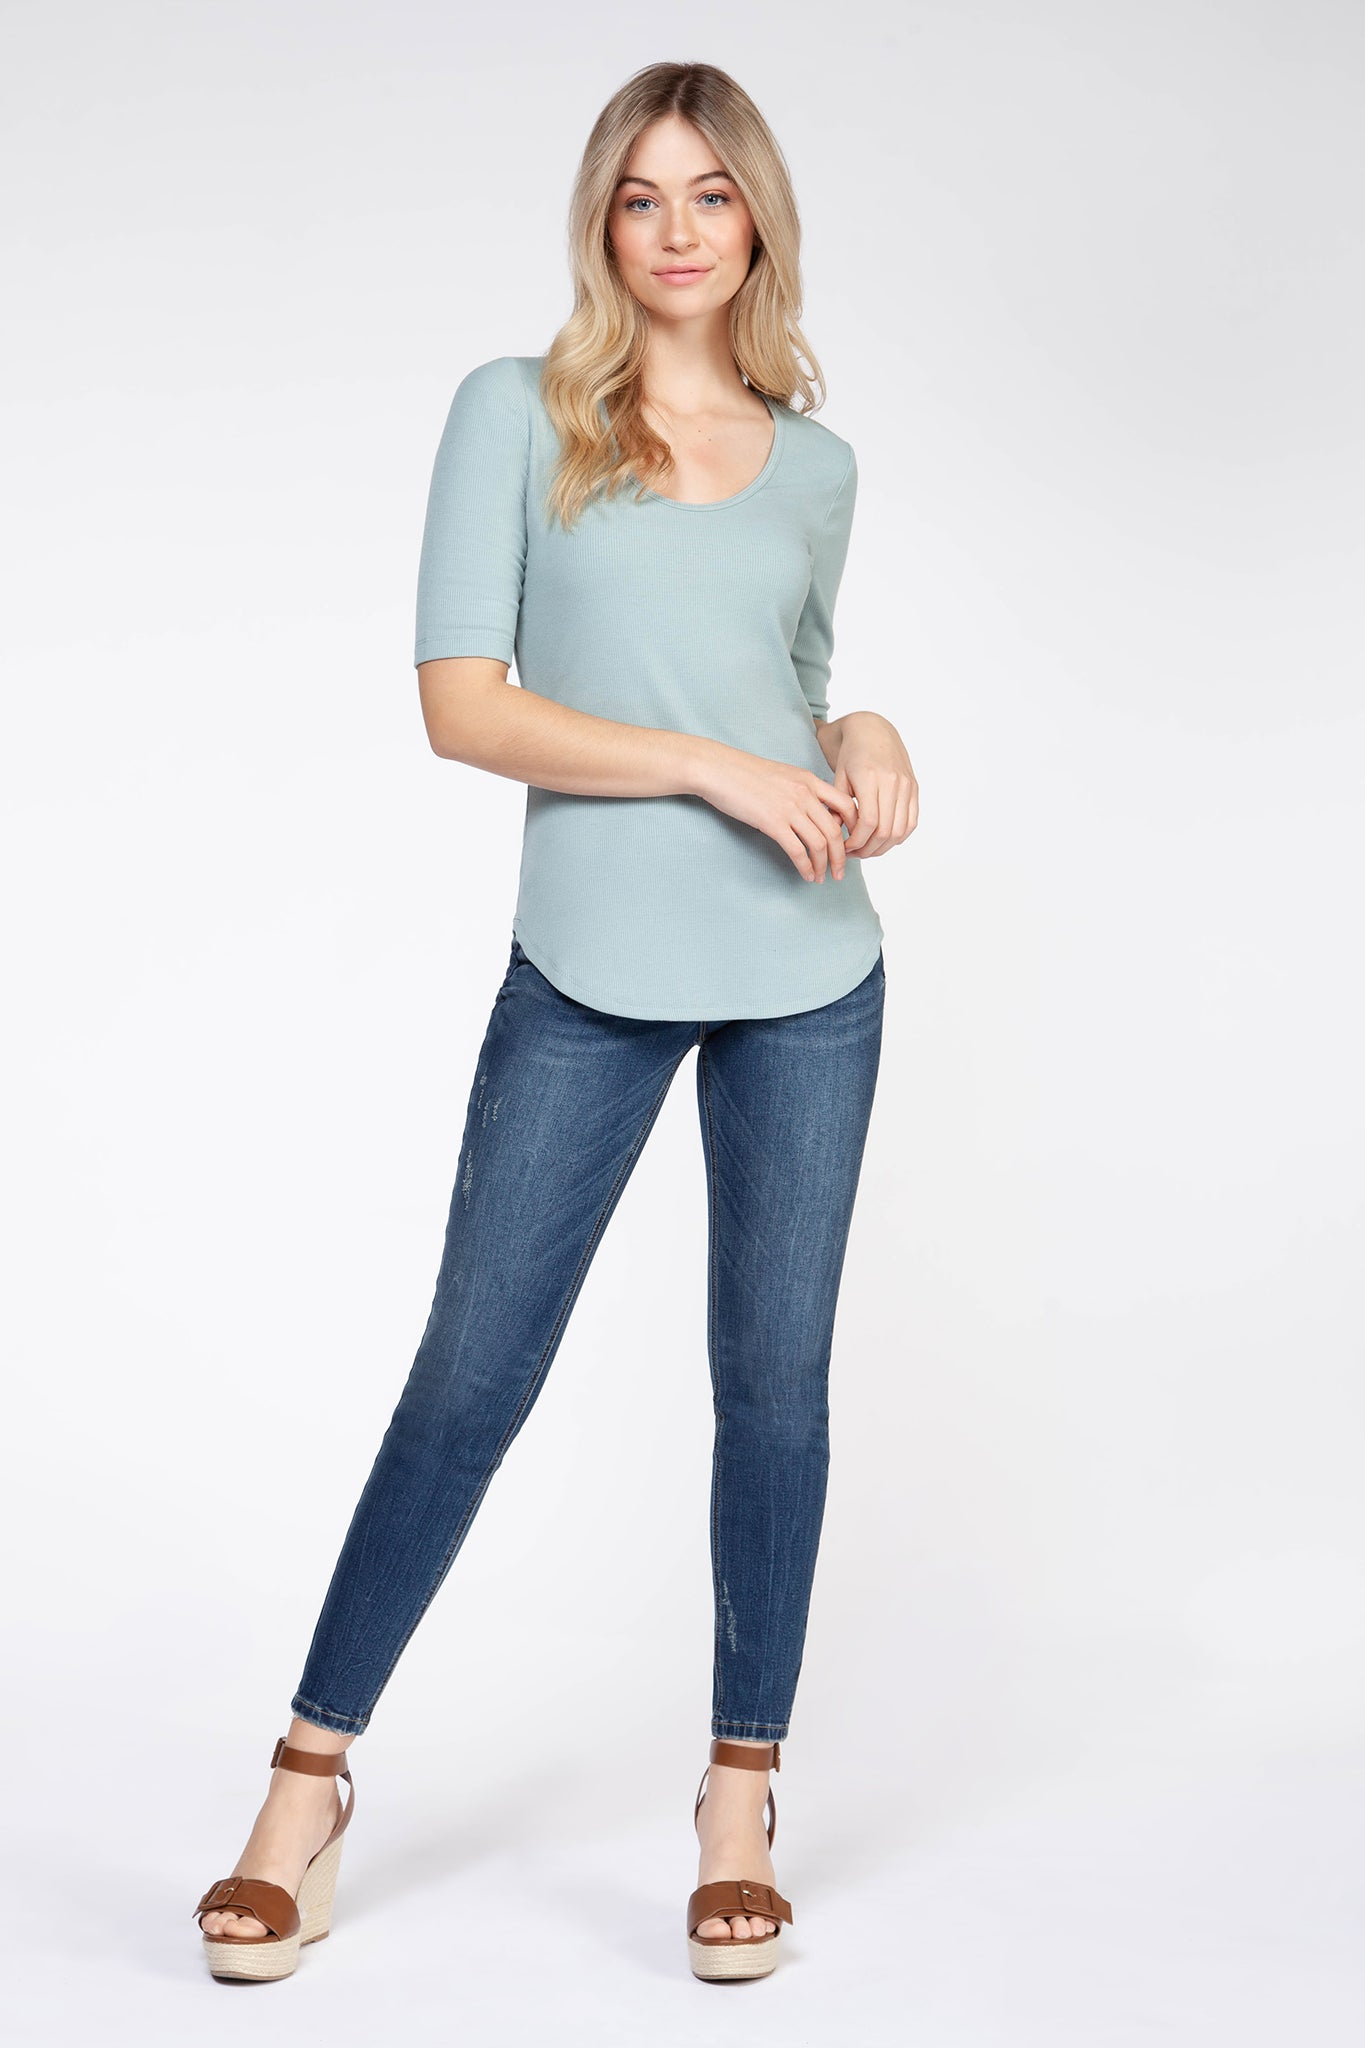 Short Sleeve Round Neck Ribbed Tee